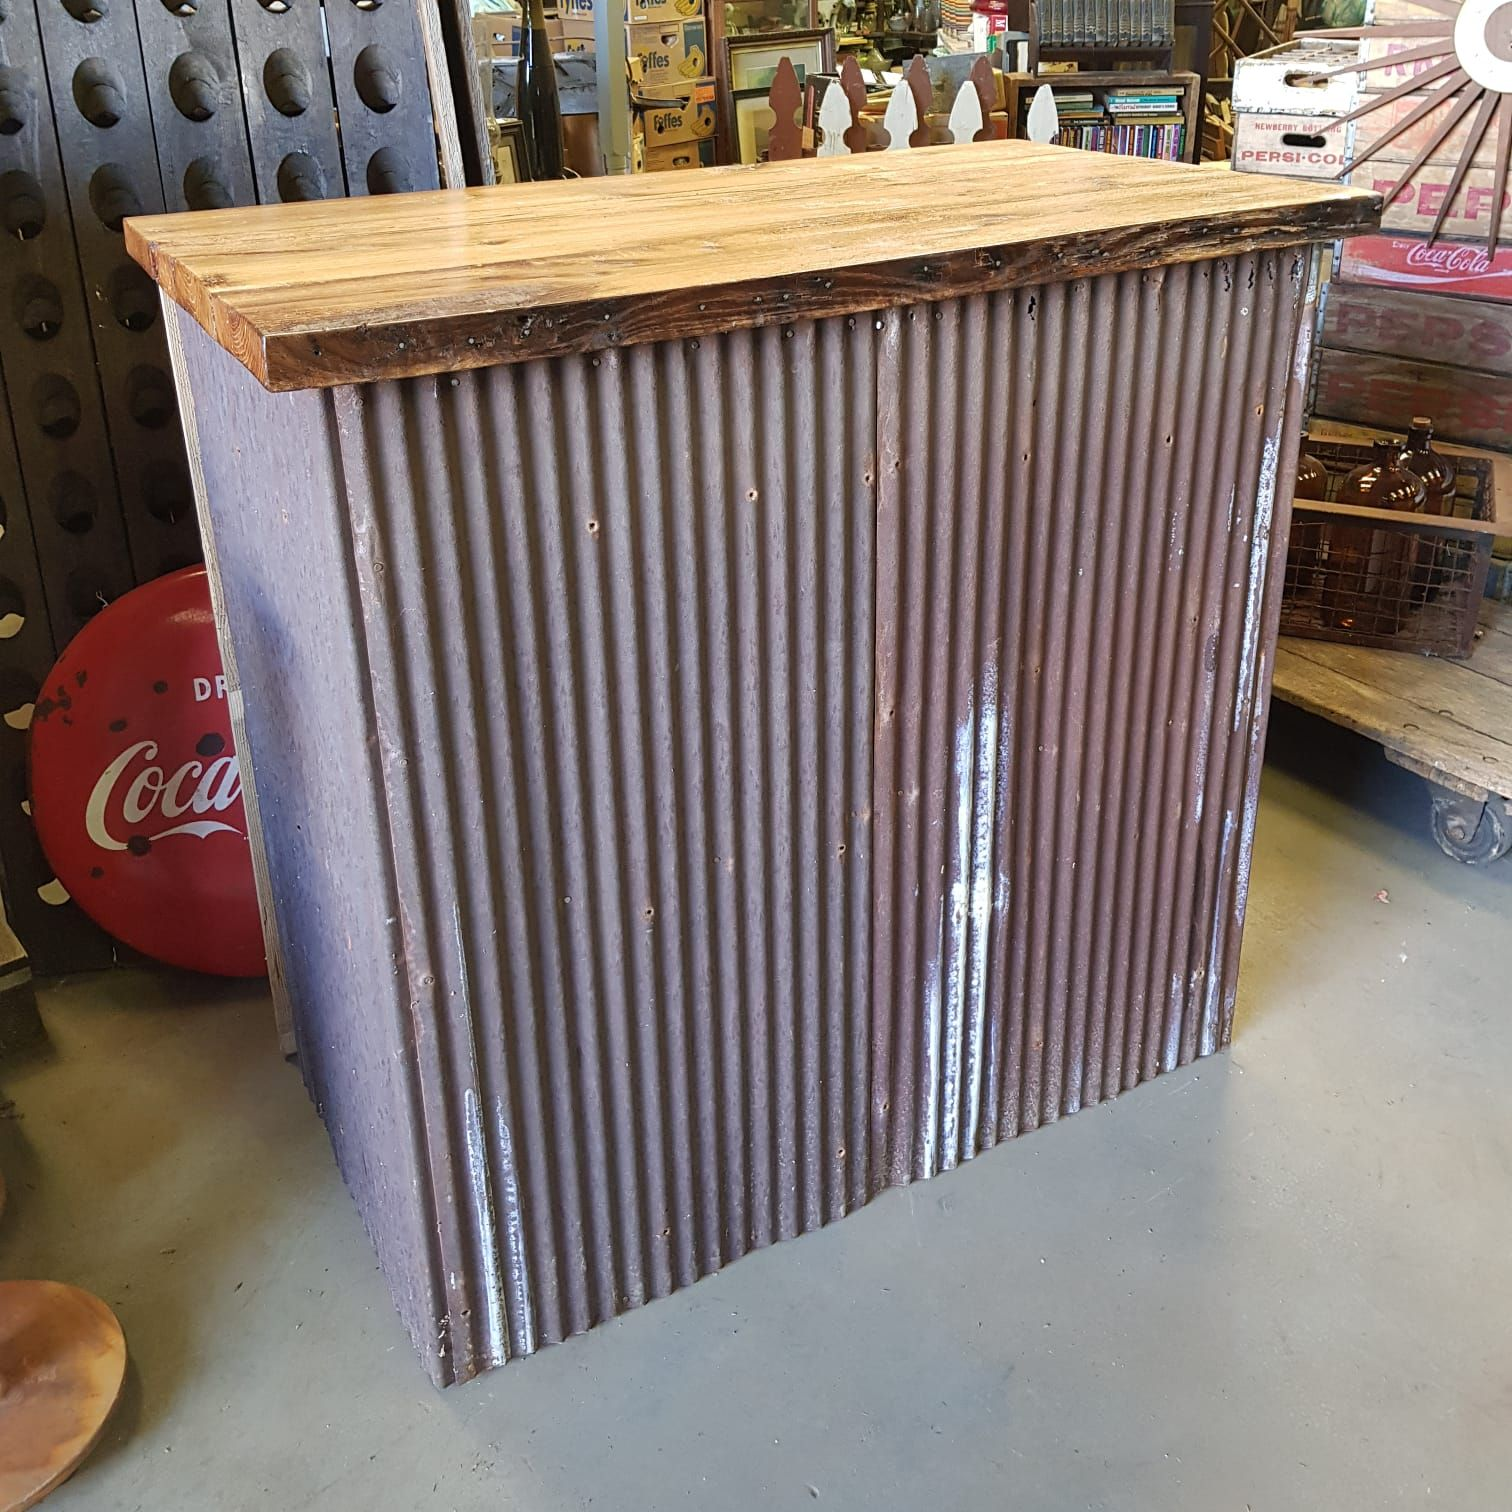 Custom made bar with American Corrugated Tin Sheets and